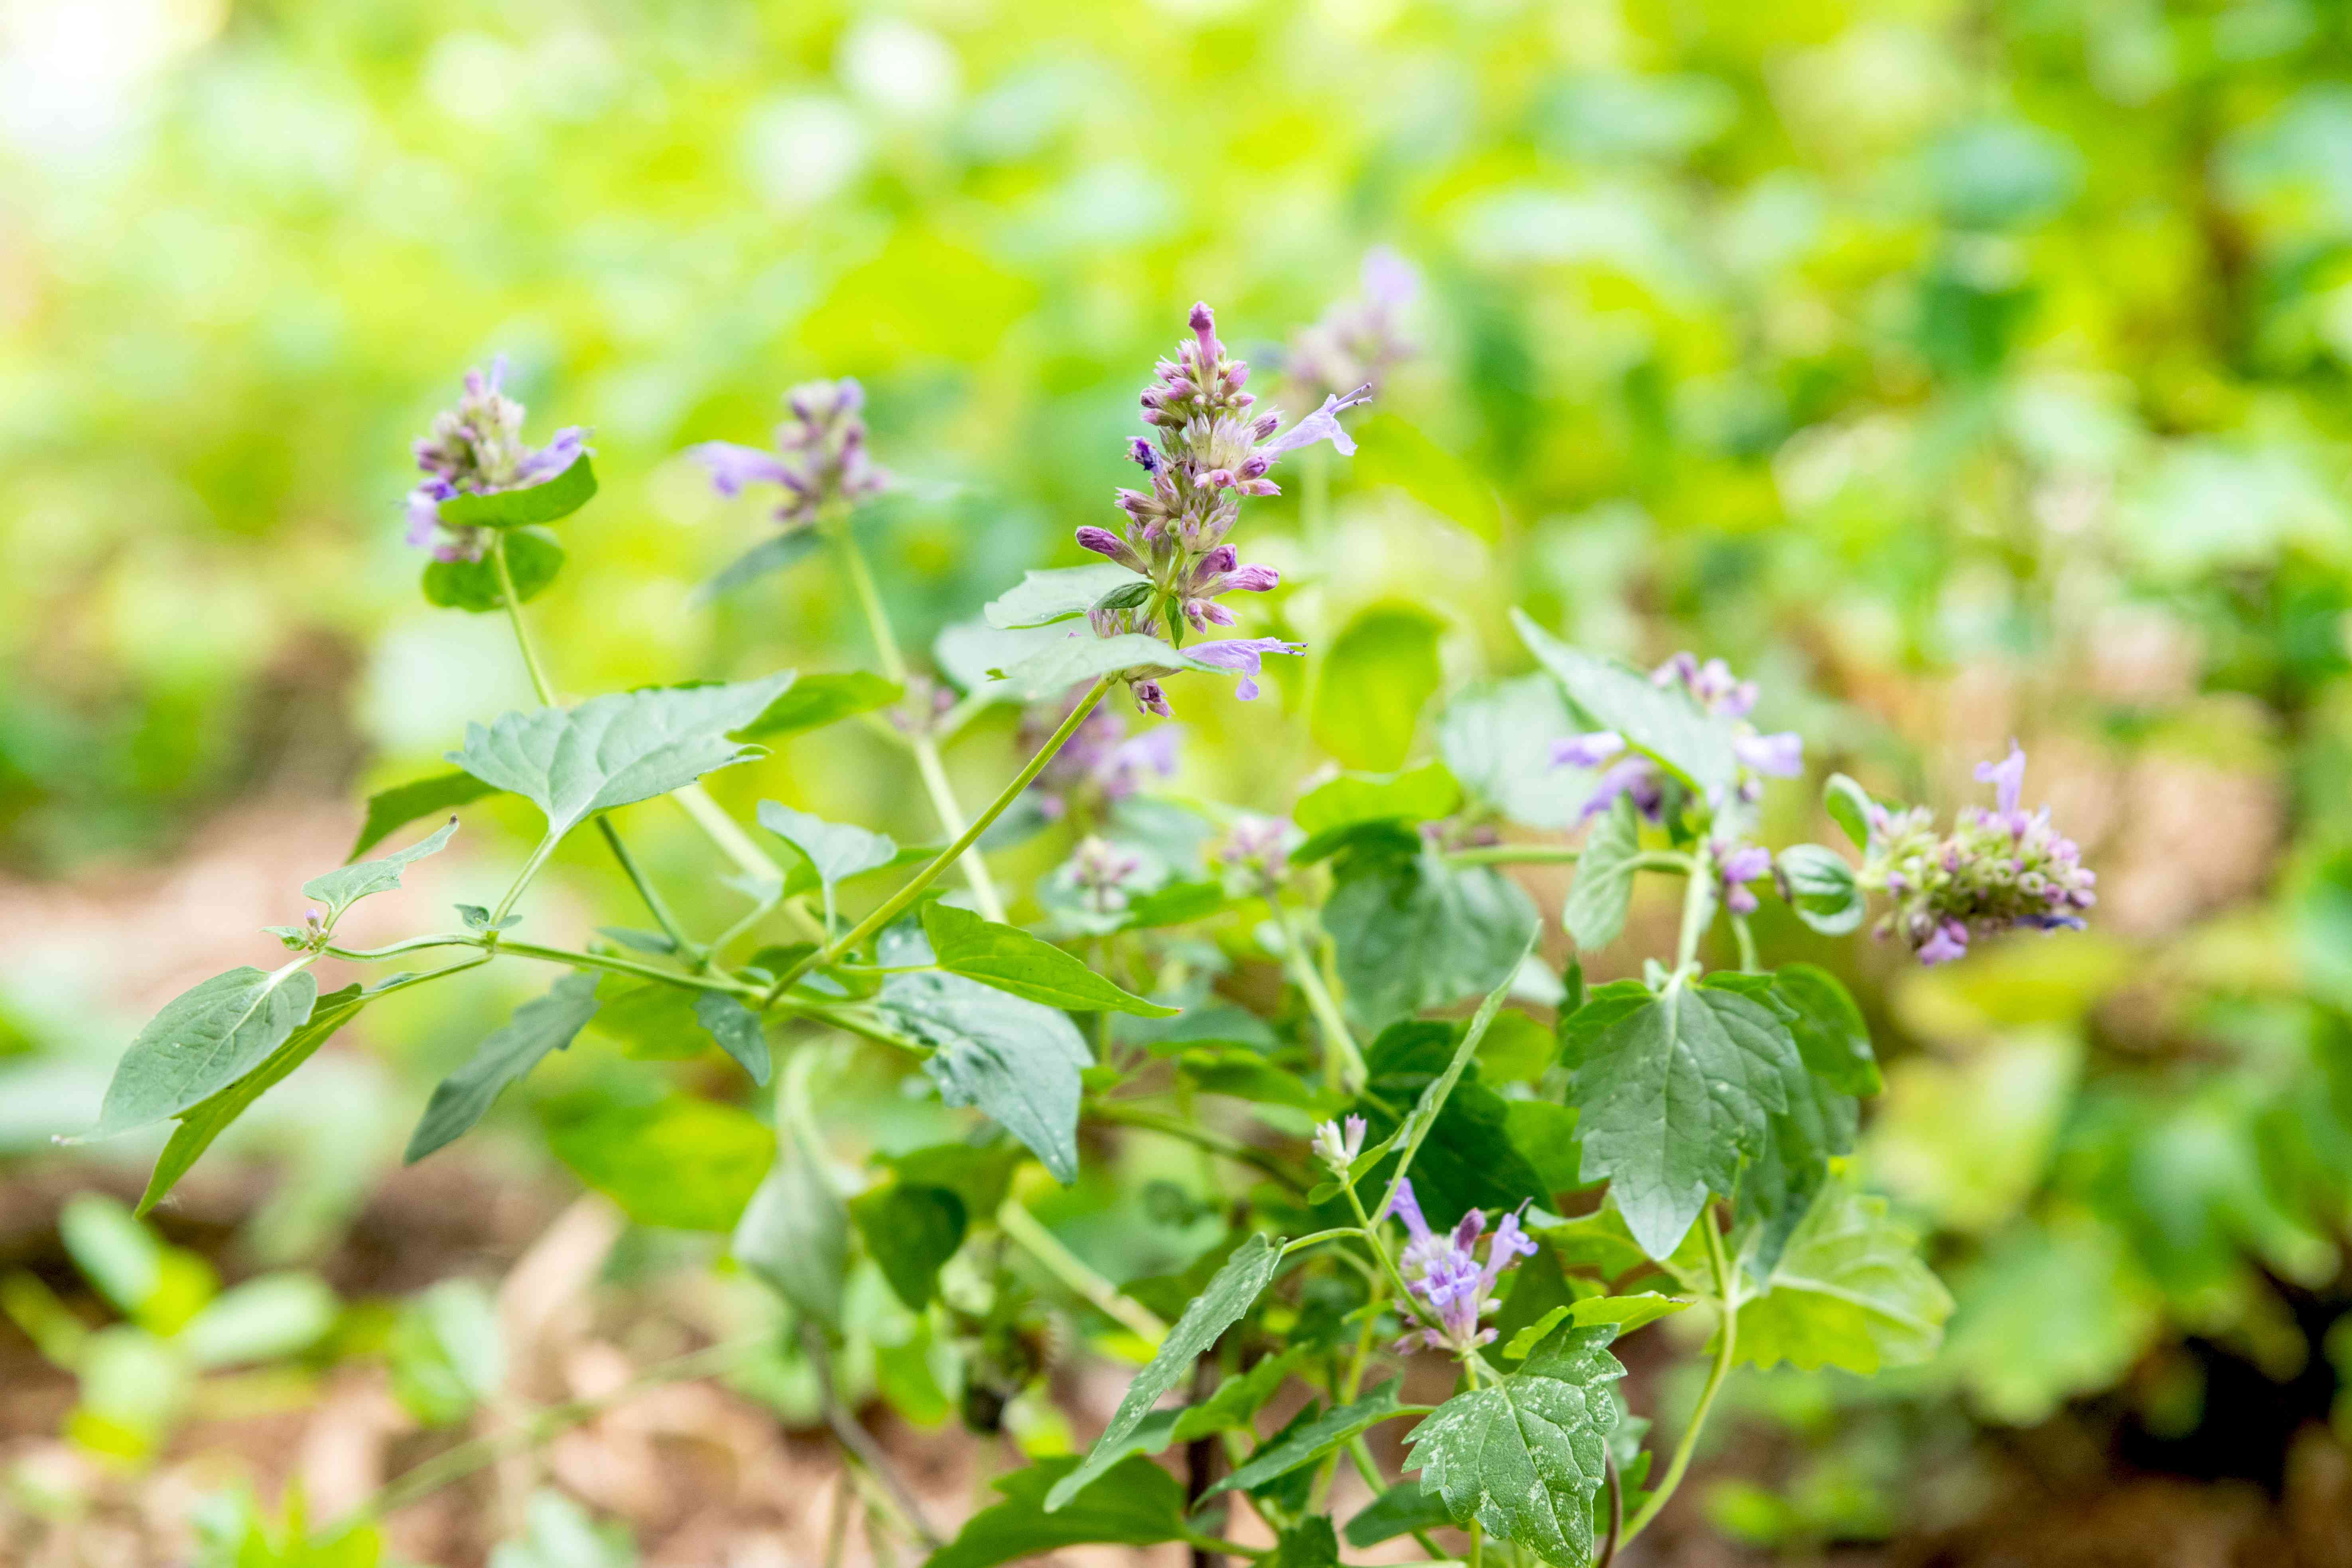 Agastache plant growing flower spikes with tiny buds and leaves on thin stems